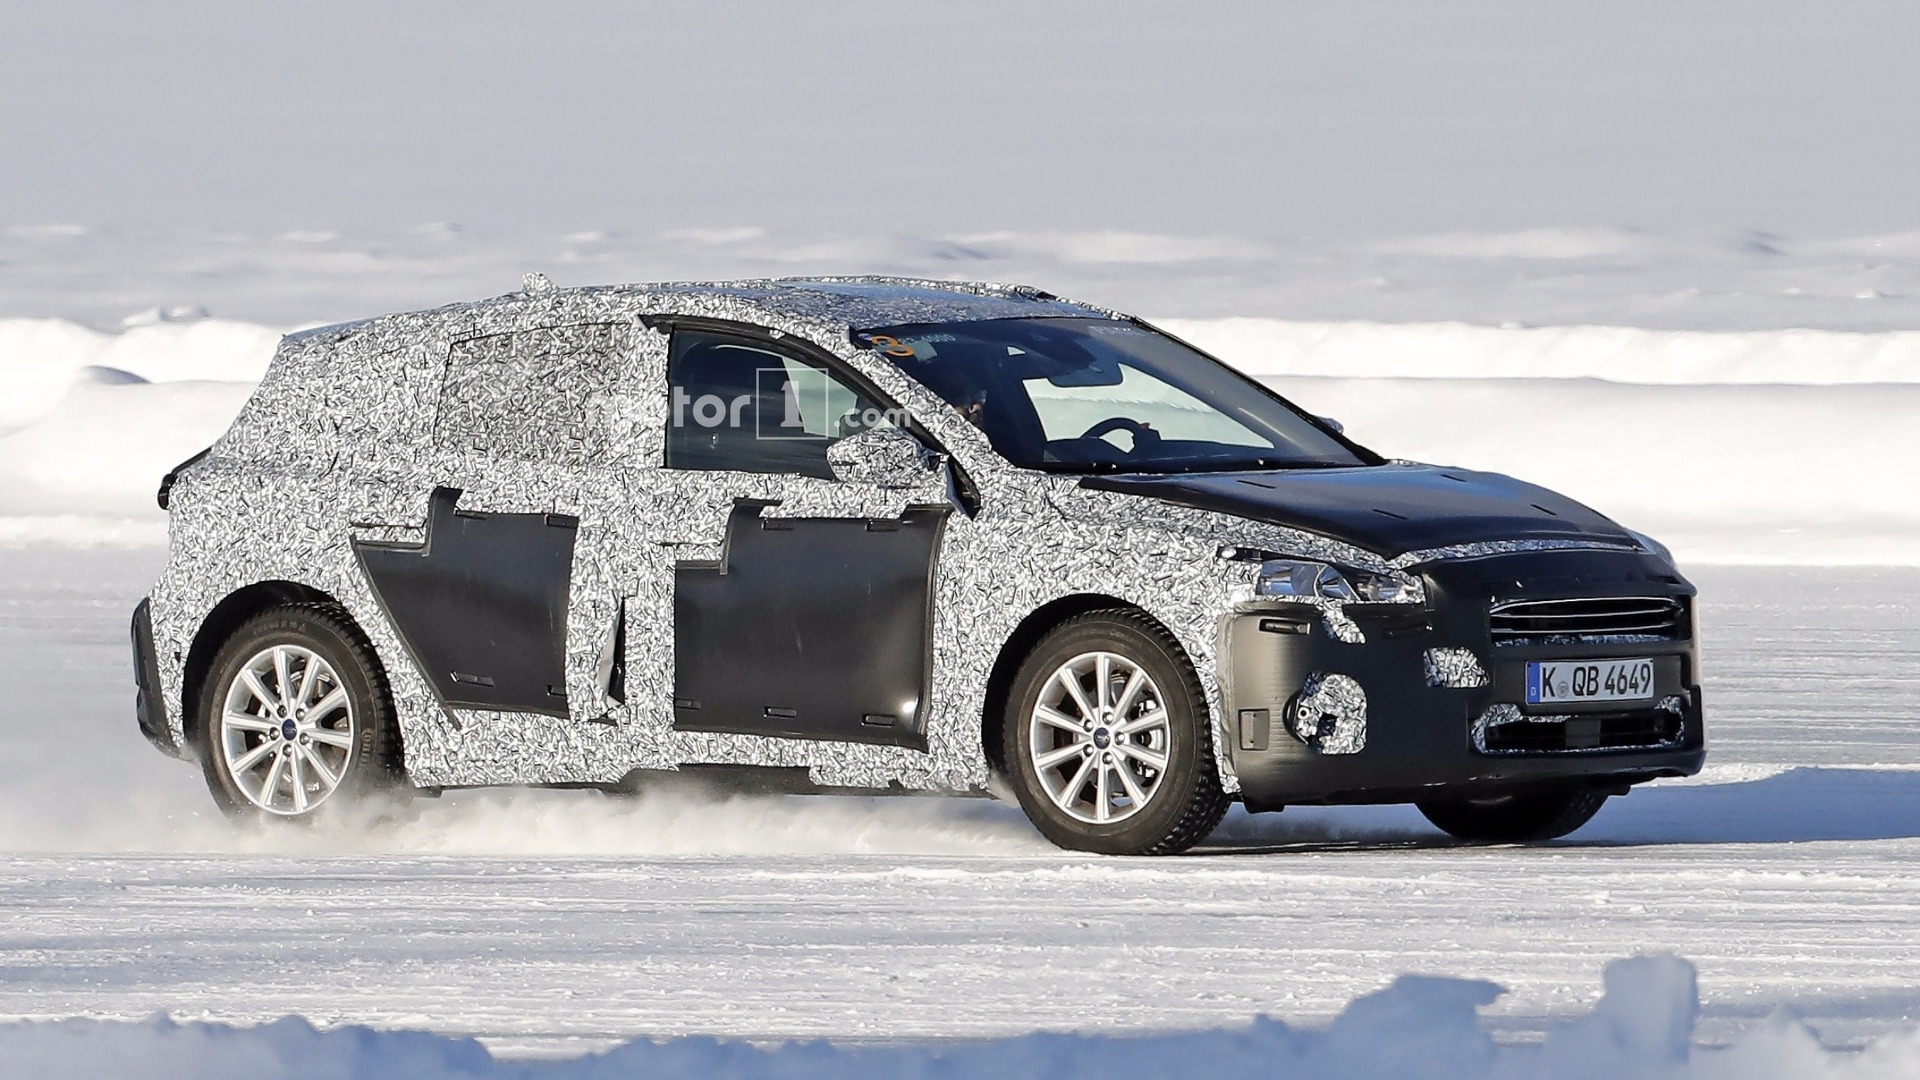 2018 ford focus prototype aka 39 paul 39 spied ice skating. Black Bedroom Furniture Sets. Home Design Ideas